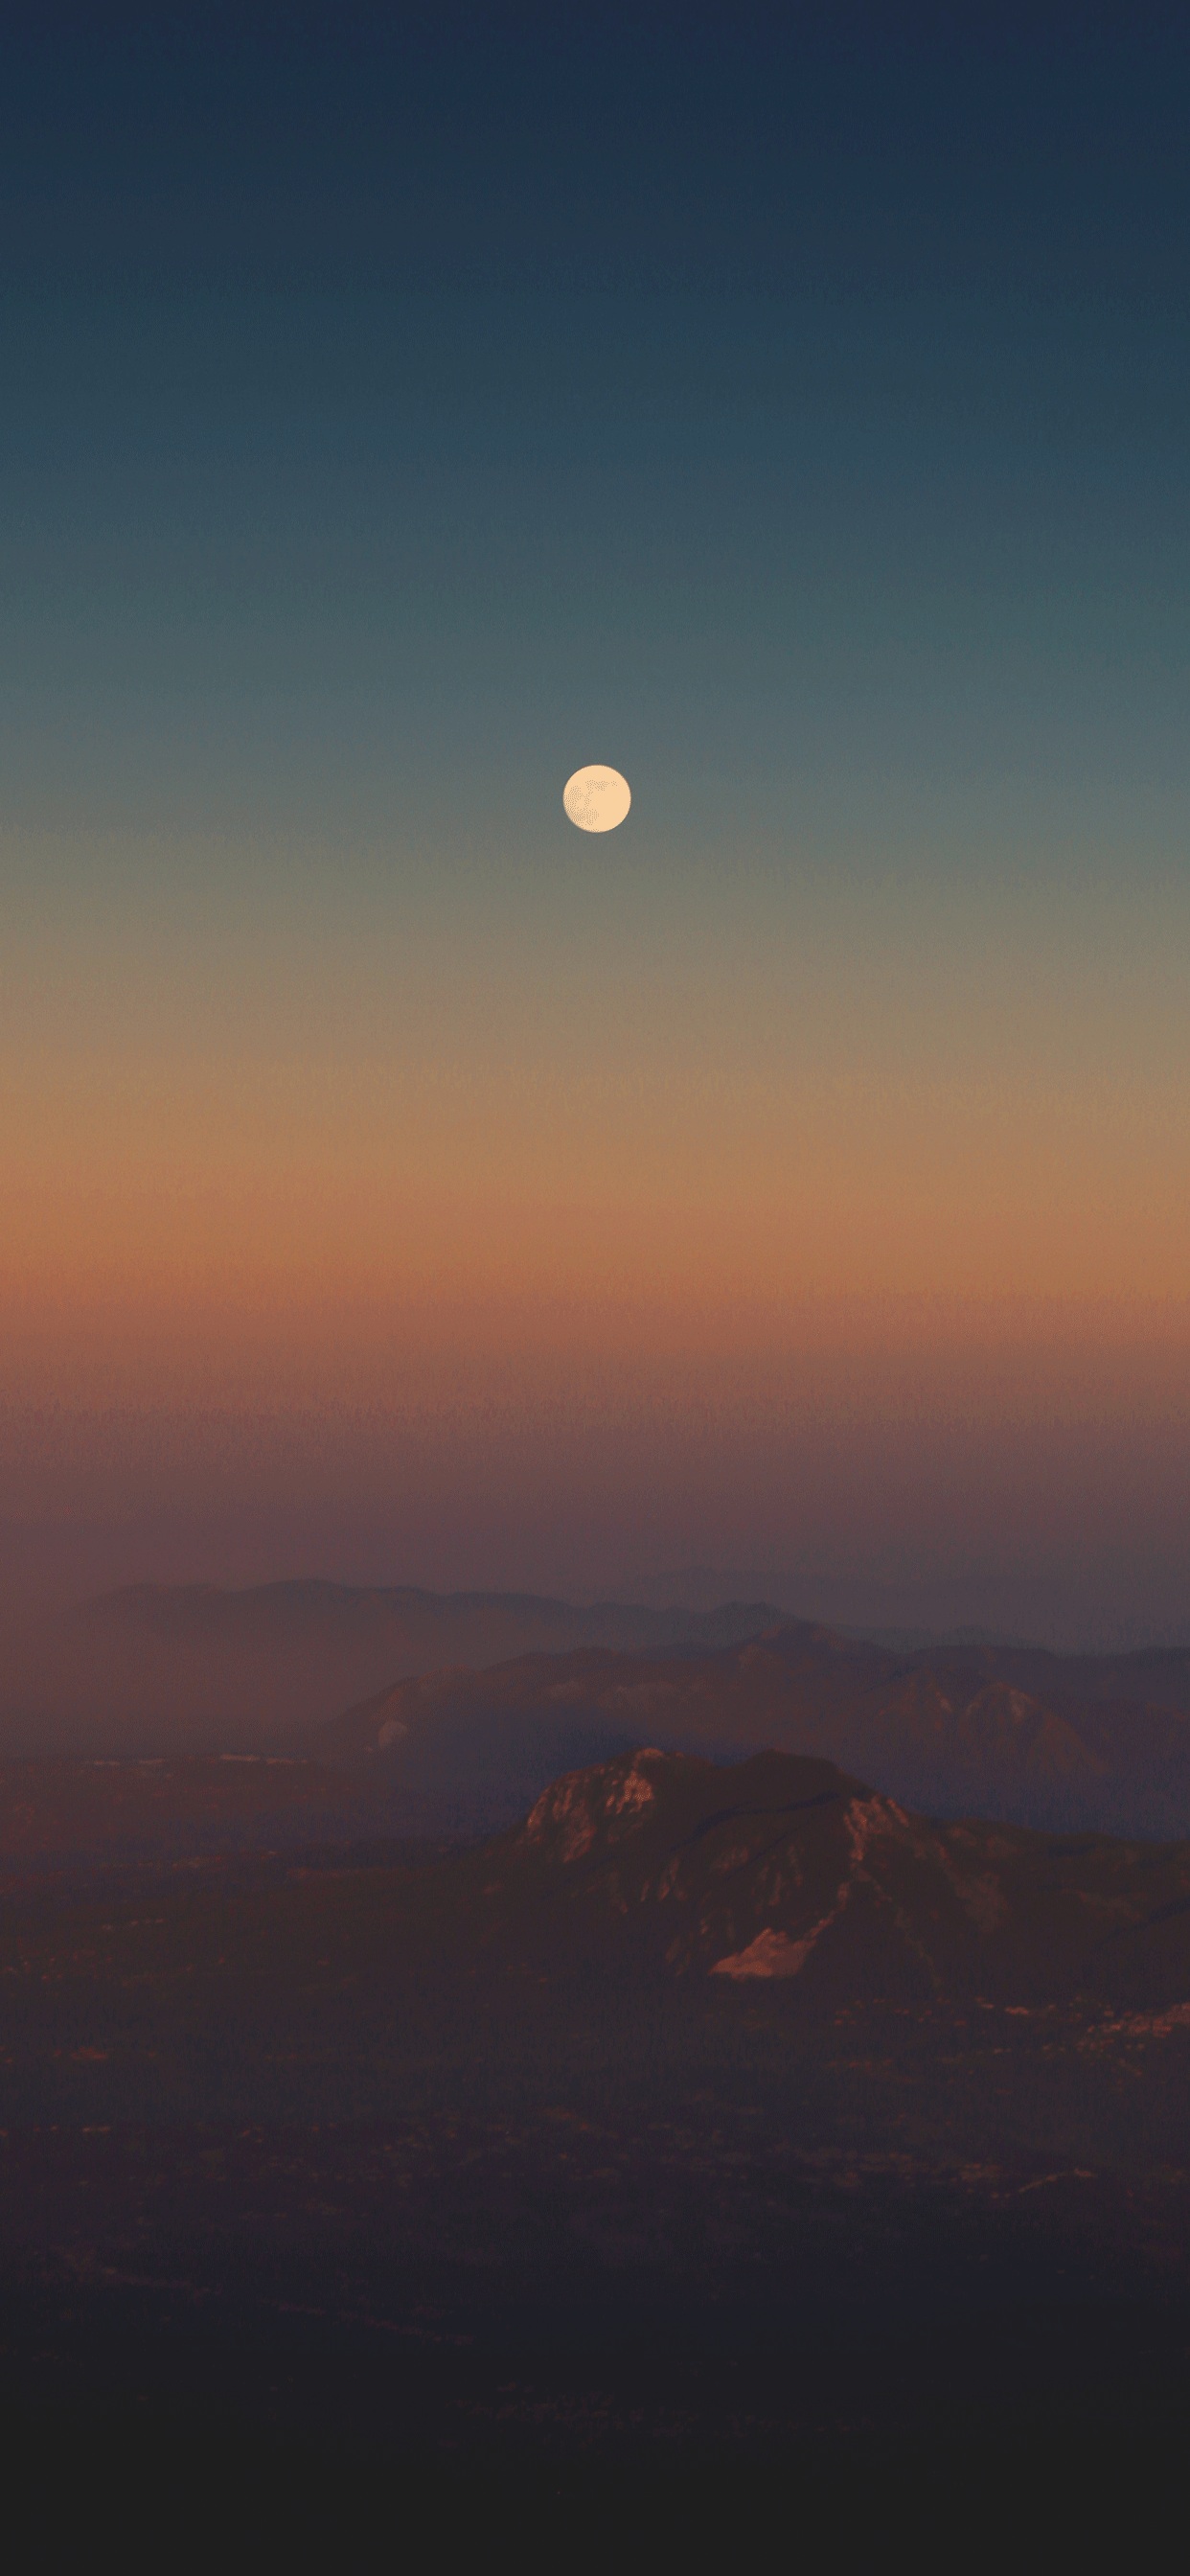 Iphone Wallpaper Moon posted by Ethan Cunningham